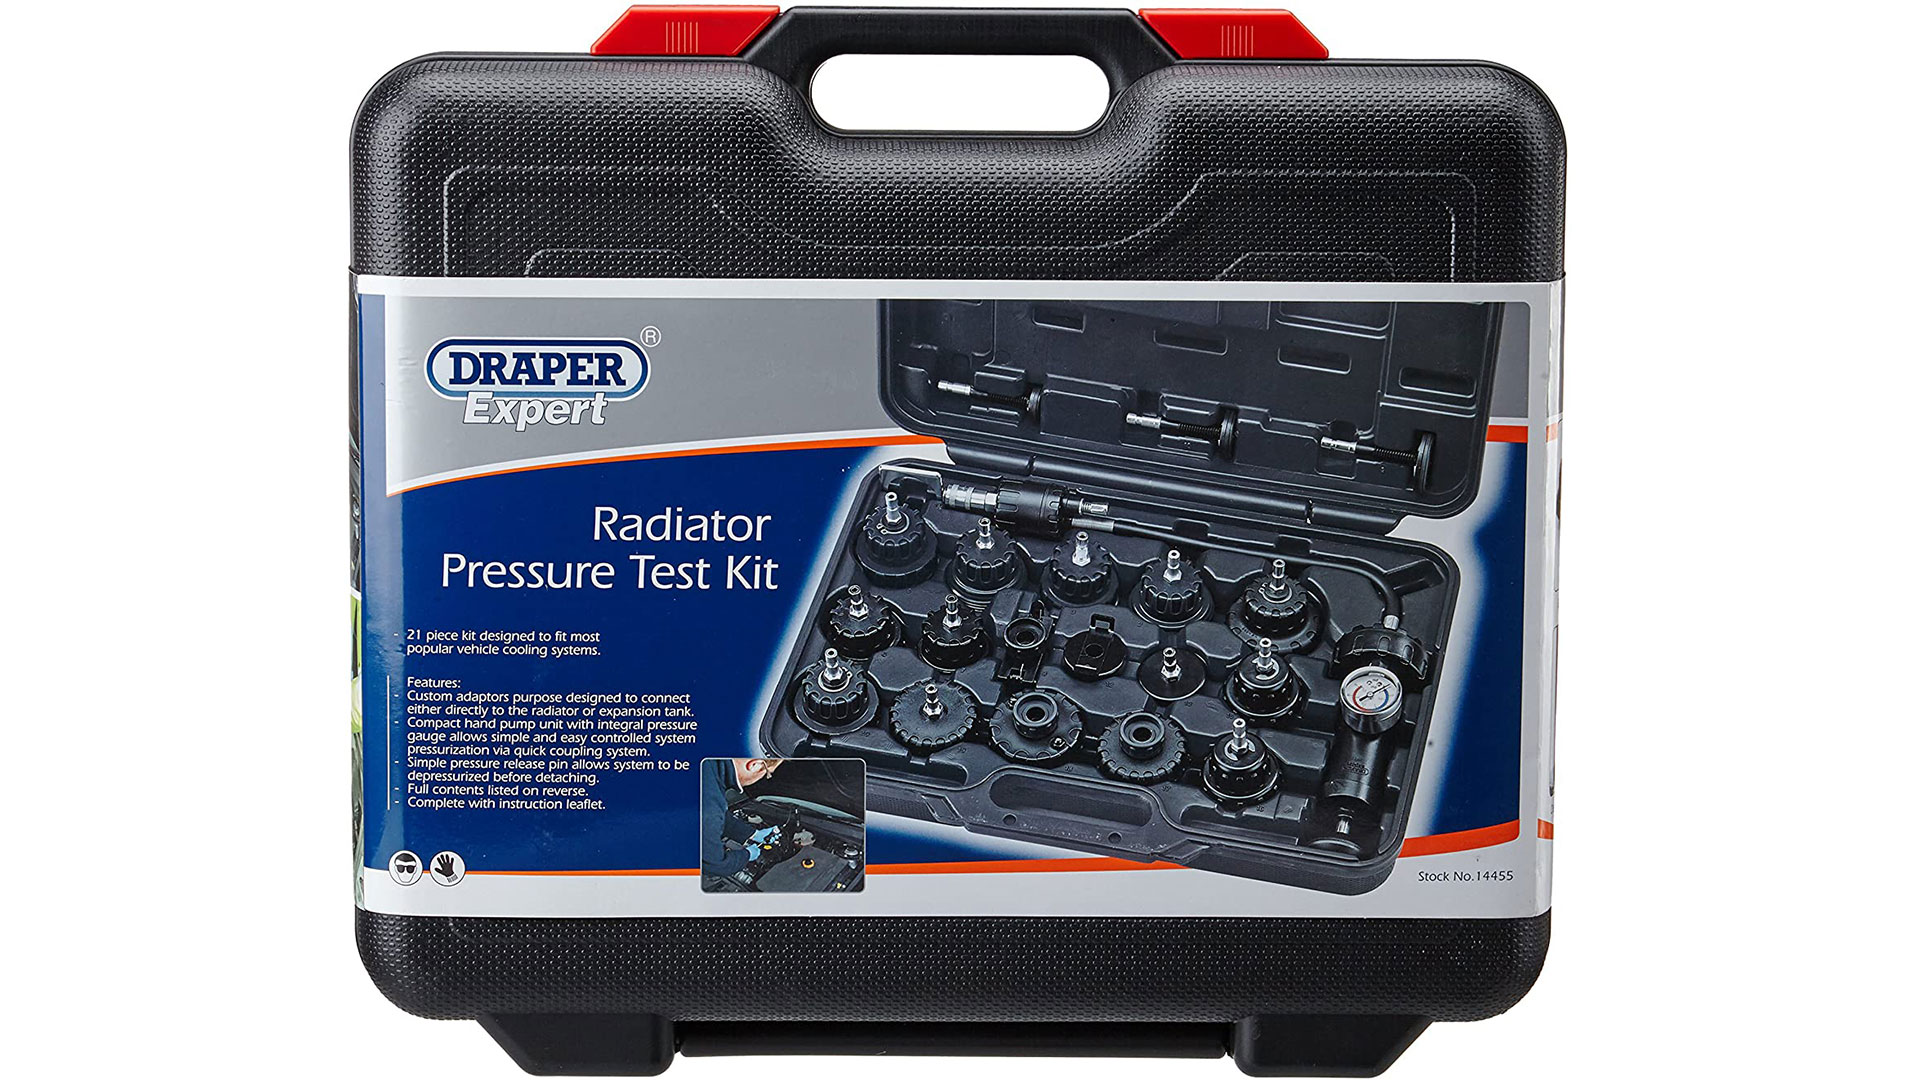 draper radiator pressure test kit